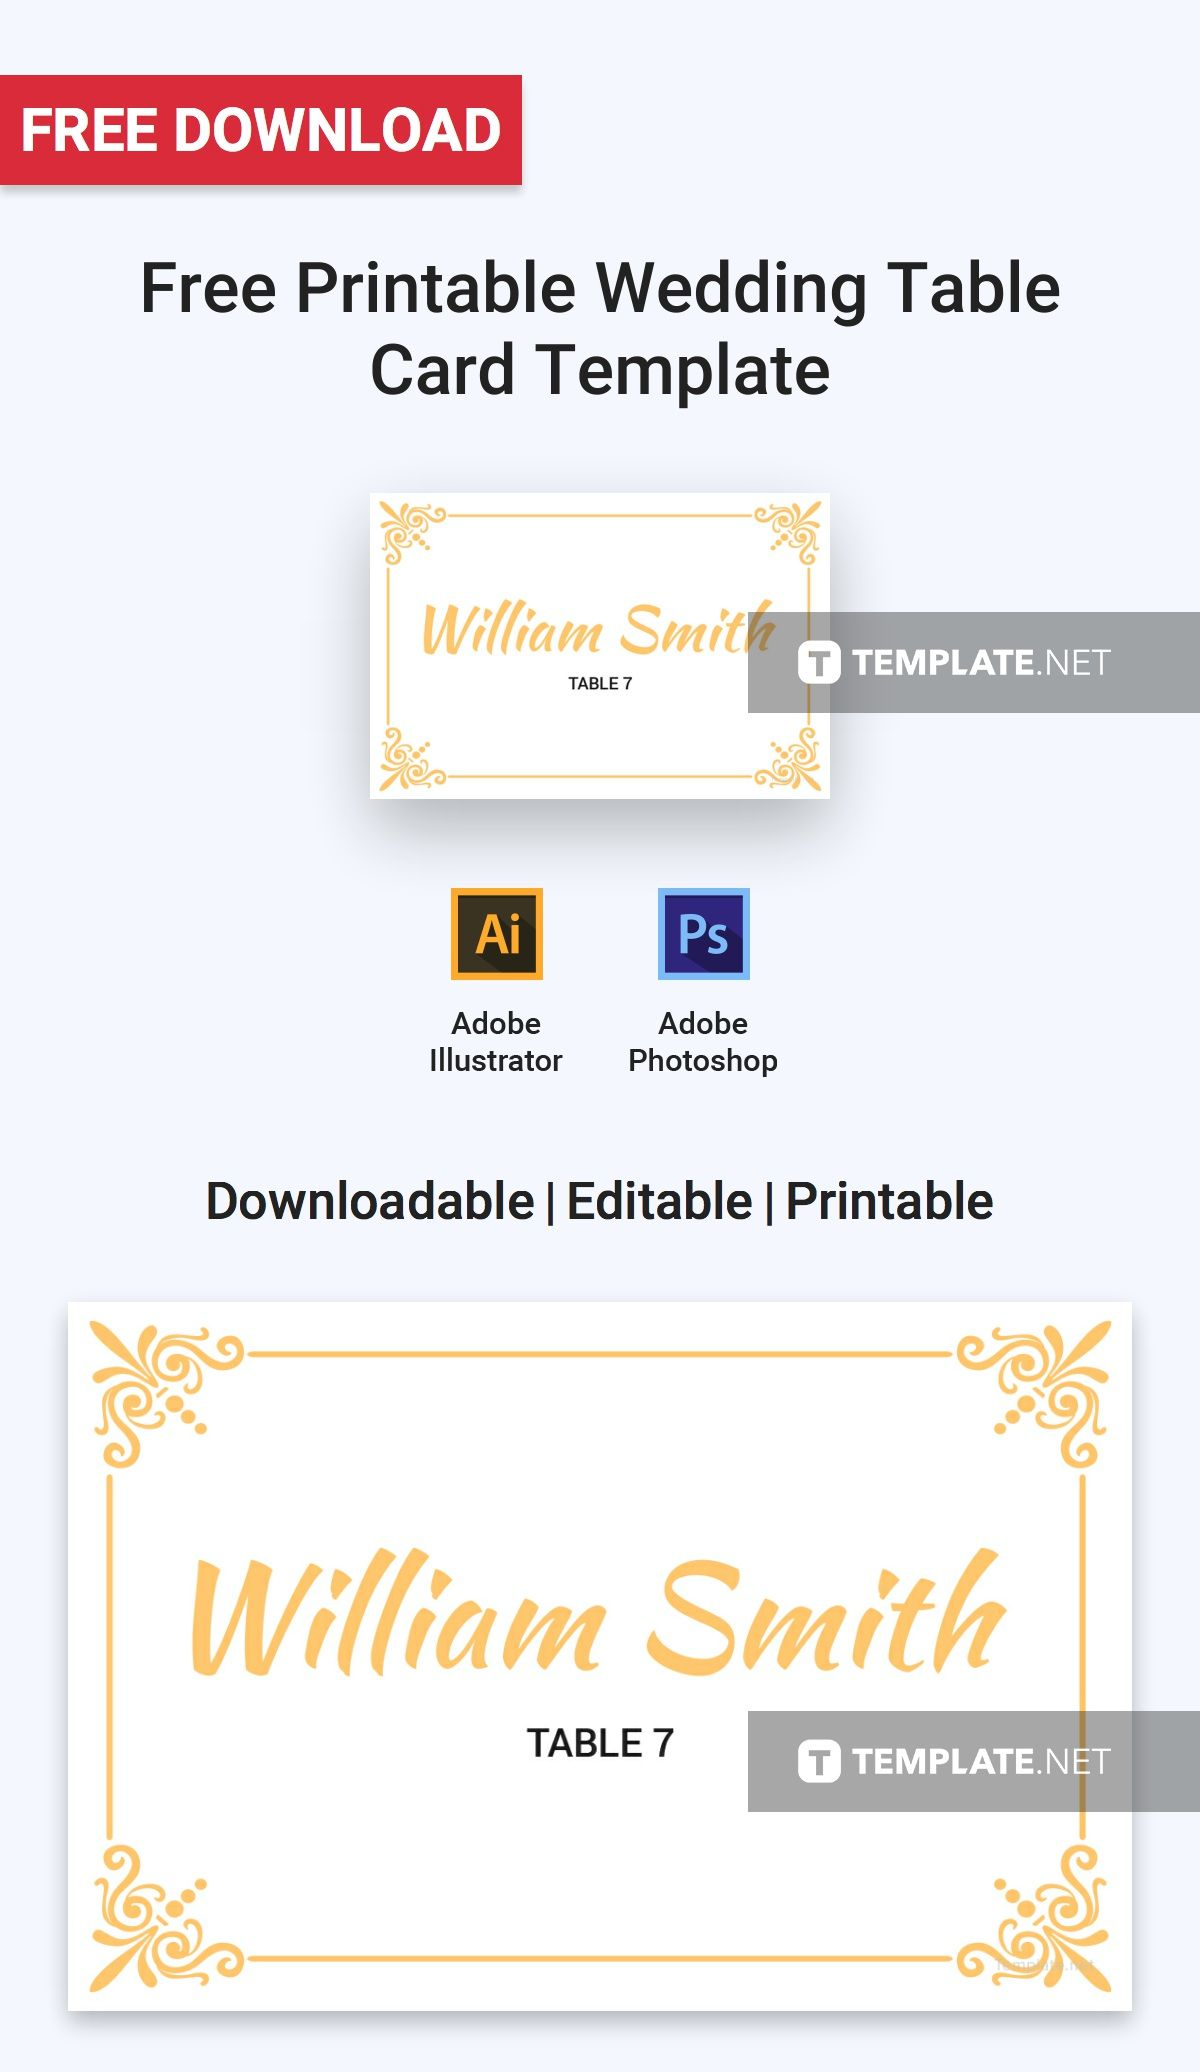 Printable Wedding Table Card Template Free Jpg Illustrator Word Apple Pages Psd Publisher Template Net Card Templates Printable Printable Place Cards Wedding Free Wedding Printables